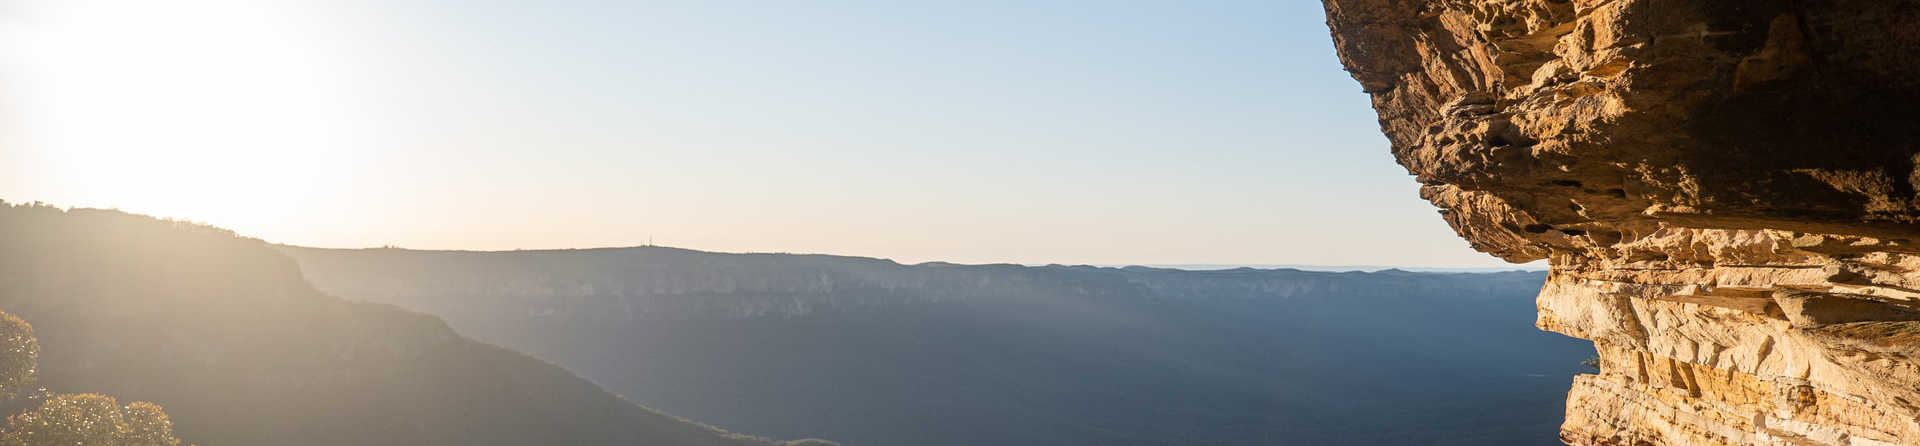 Can You Go to Blue Mountains for a Day?